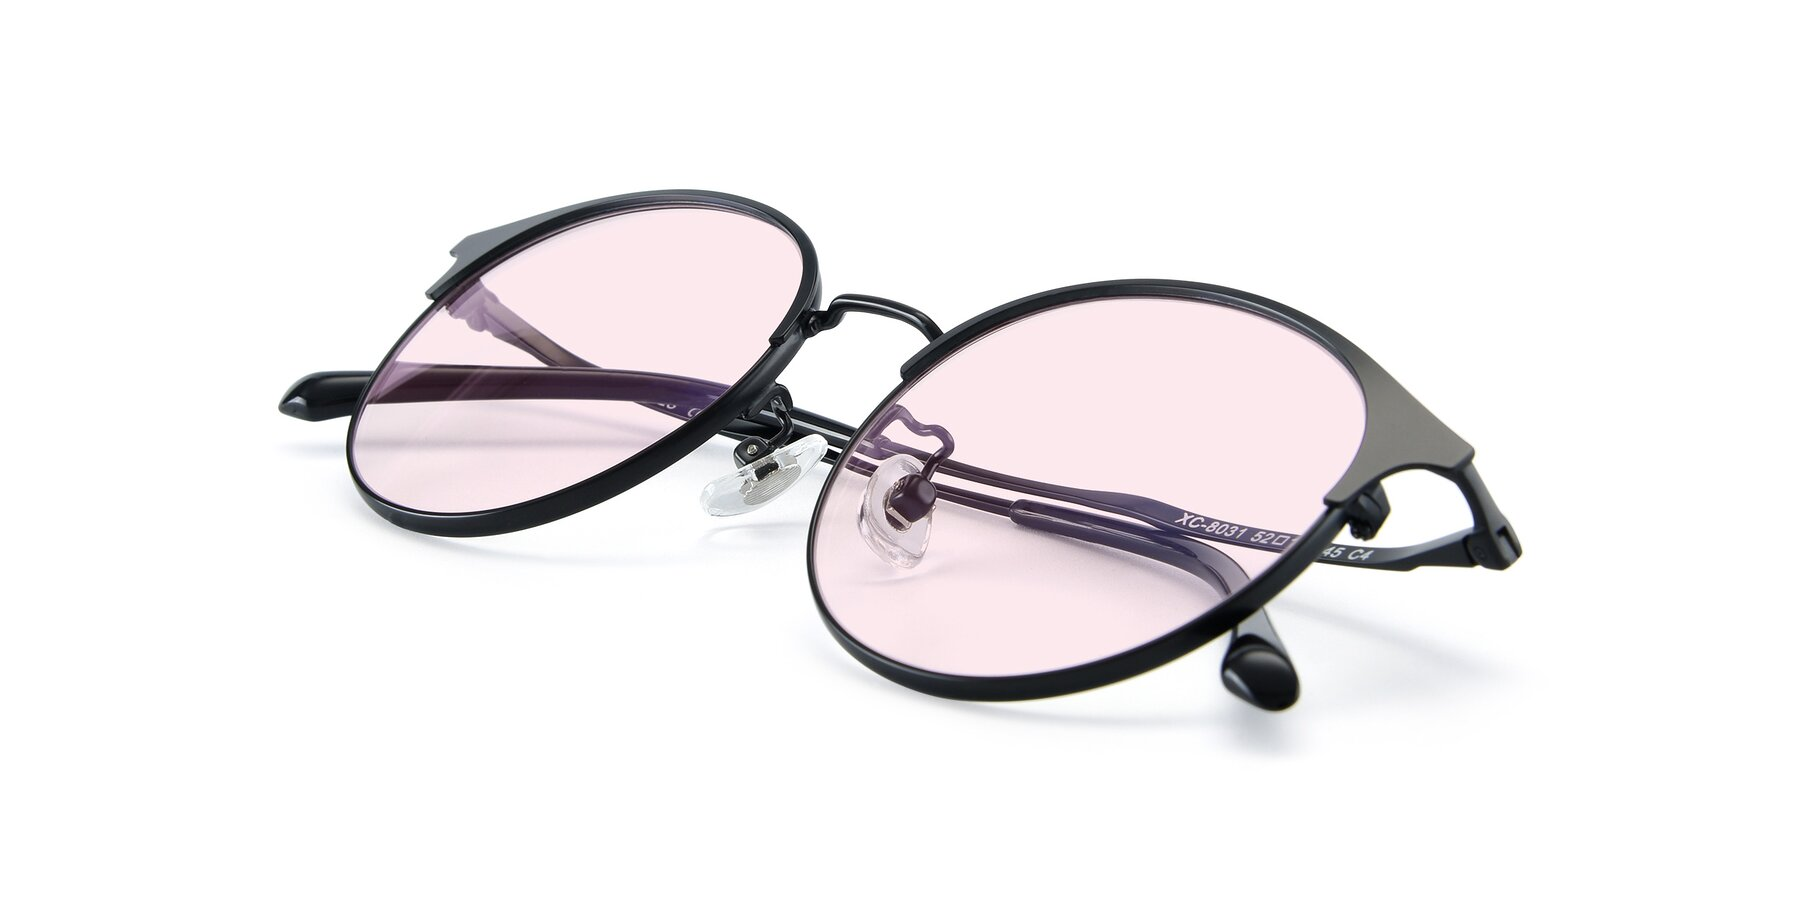 View of XC-8031 in Matte Black with Light Pink Tinted Lenses